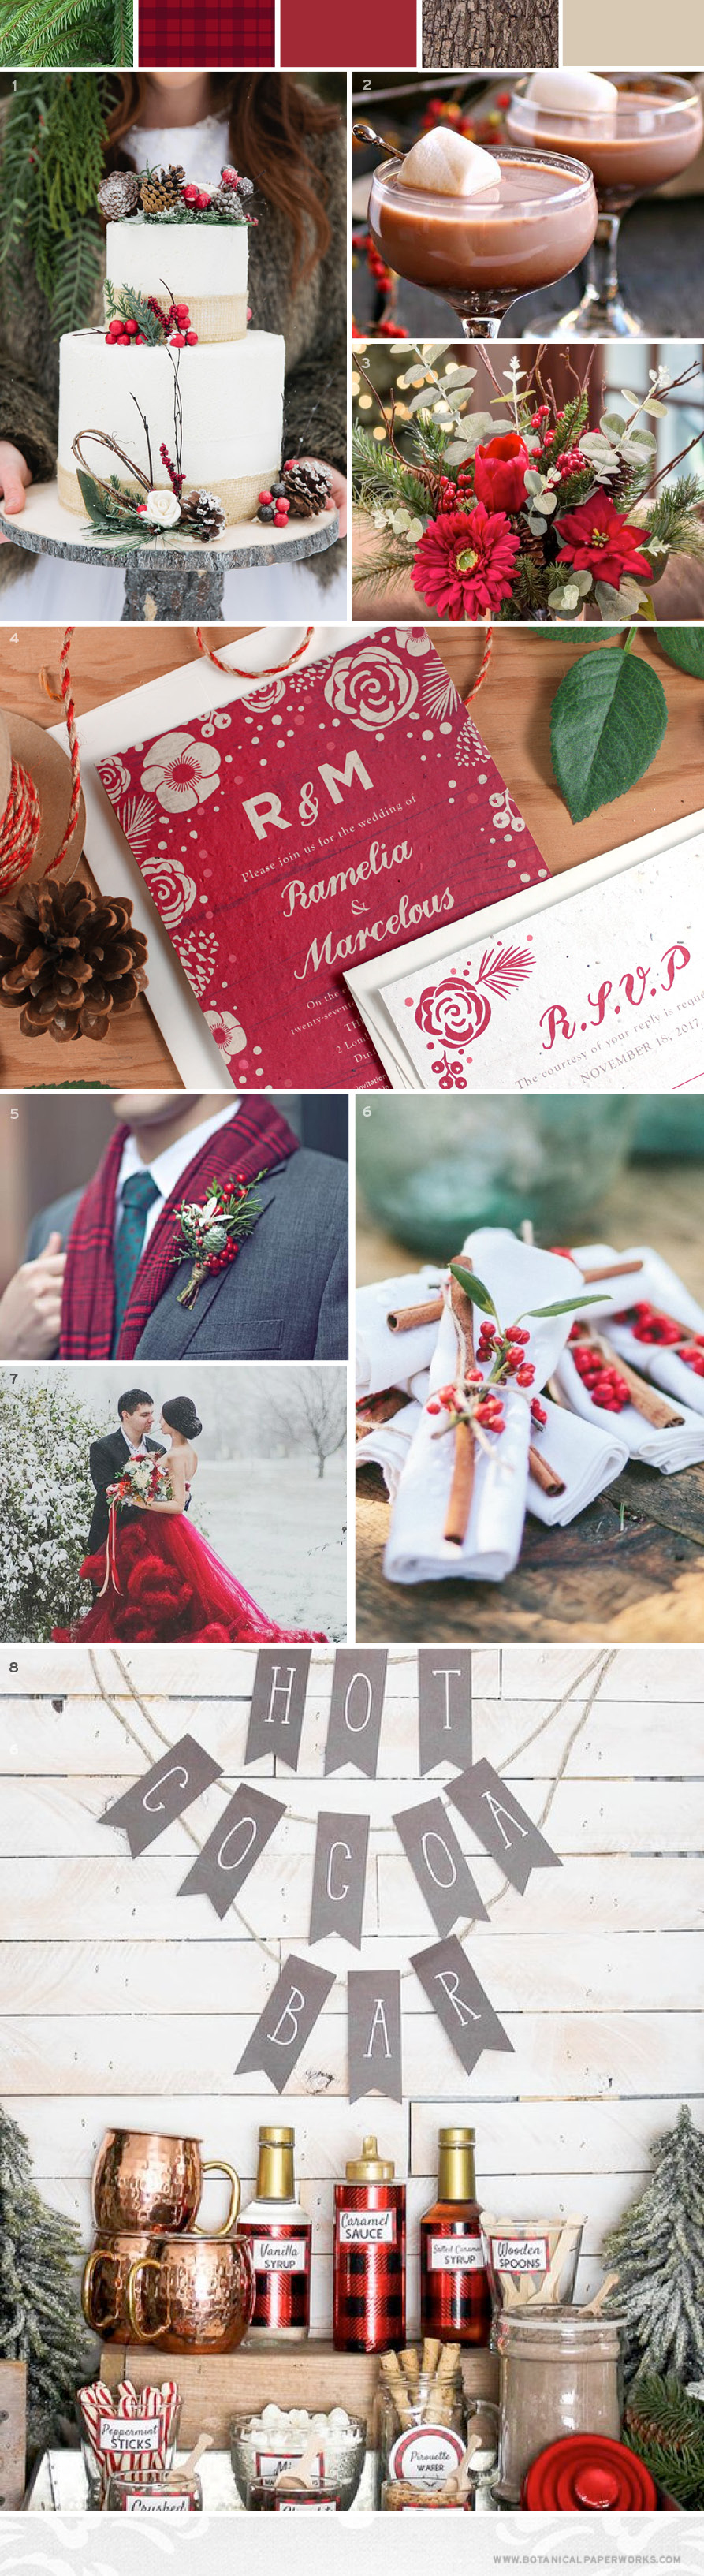 {inspiration board} Christmas weddings filled with festive charm and holiday cheer are the perfect way to celebrate with family and friends. Take a look at this collection of holiday inspired details that will make your Christmas wedding unforgettable.